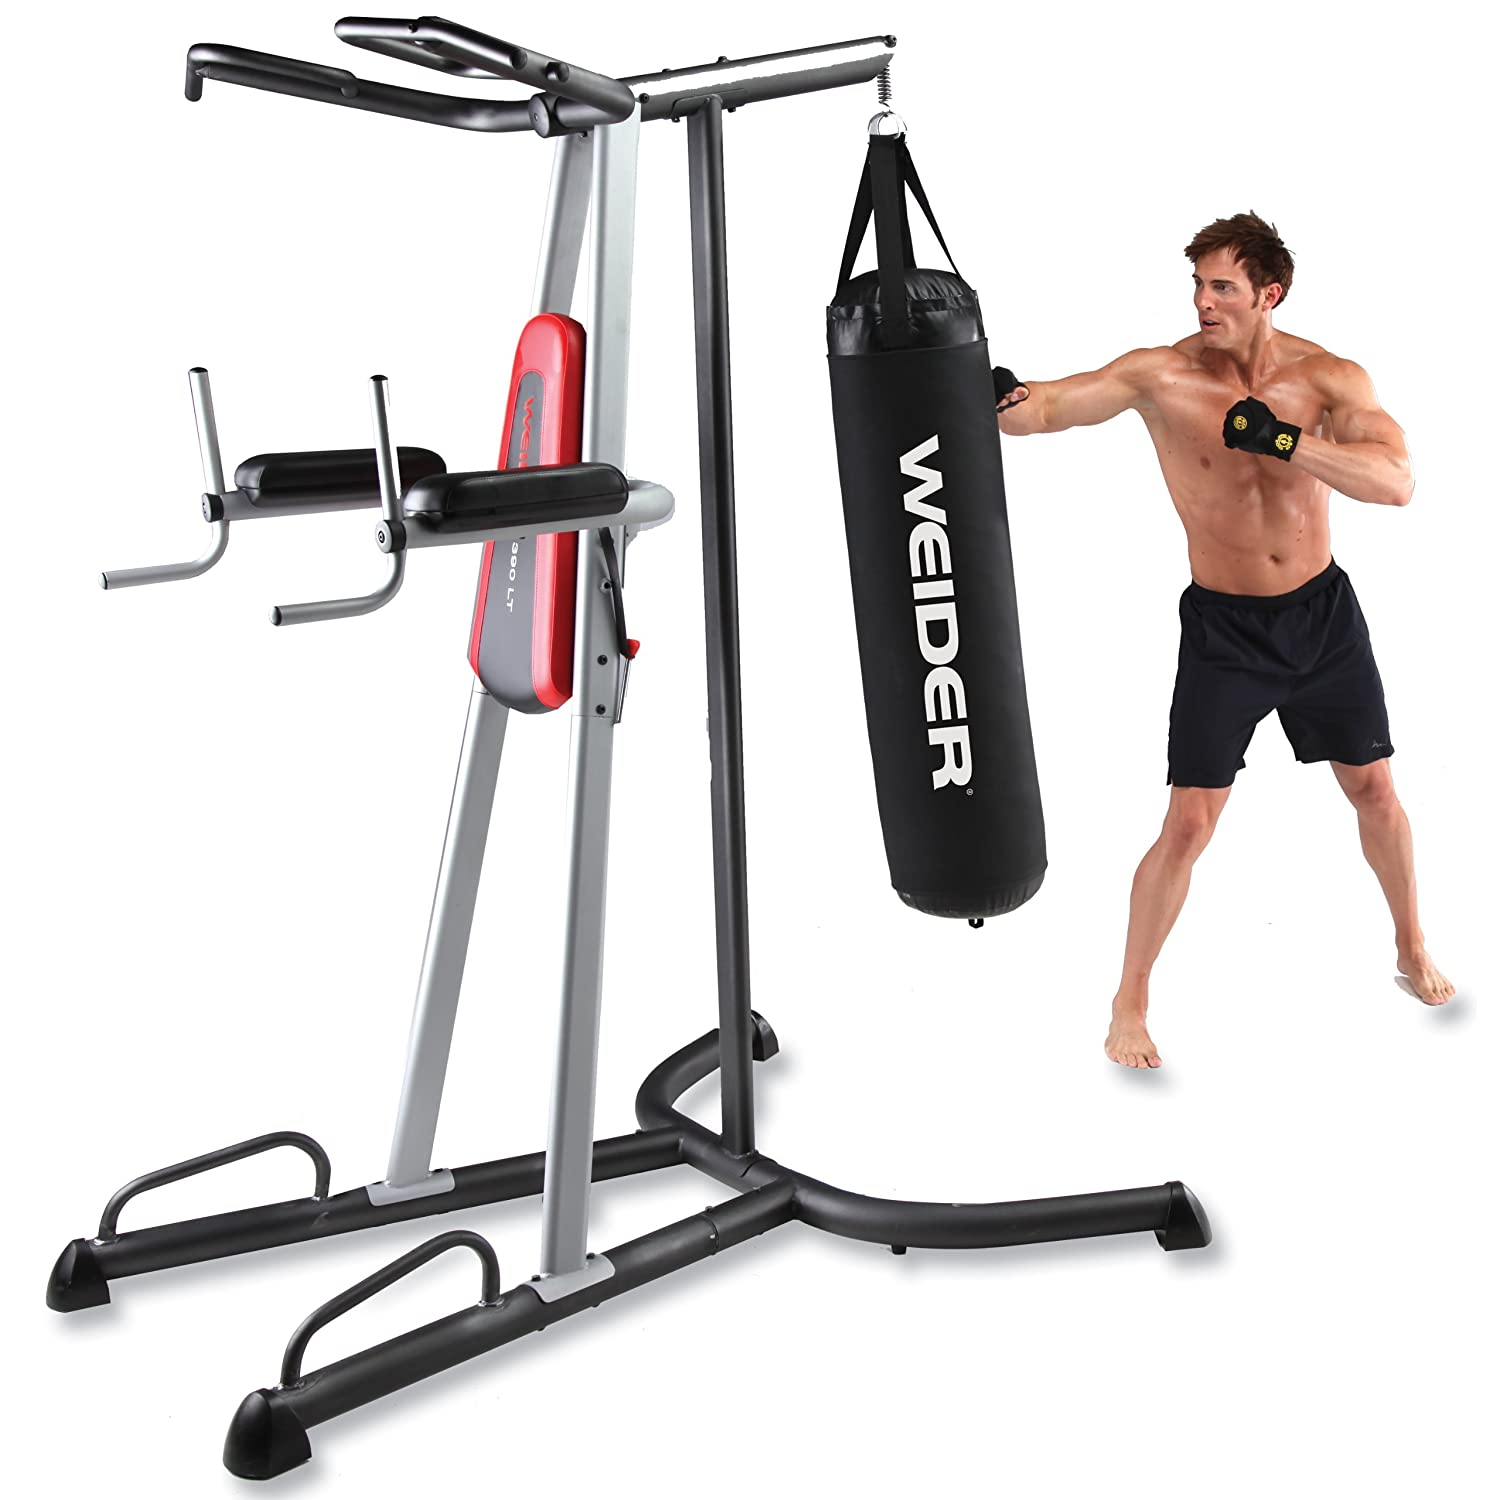 46d0eaa6ae Amazon.com   Weider 390 LT Power Tower Home Gym   Chinup Dip Station With  Punching Bag   Sports   Outdoors